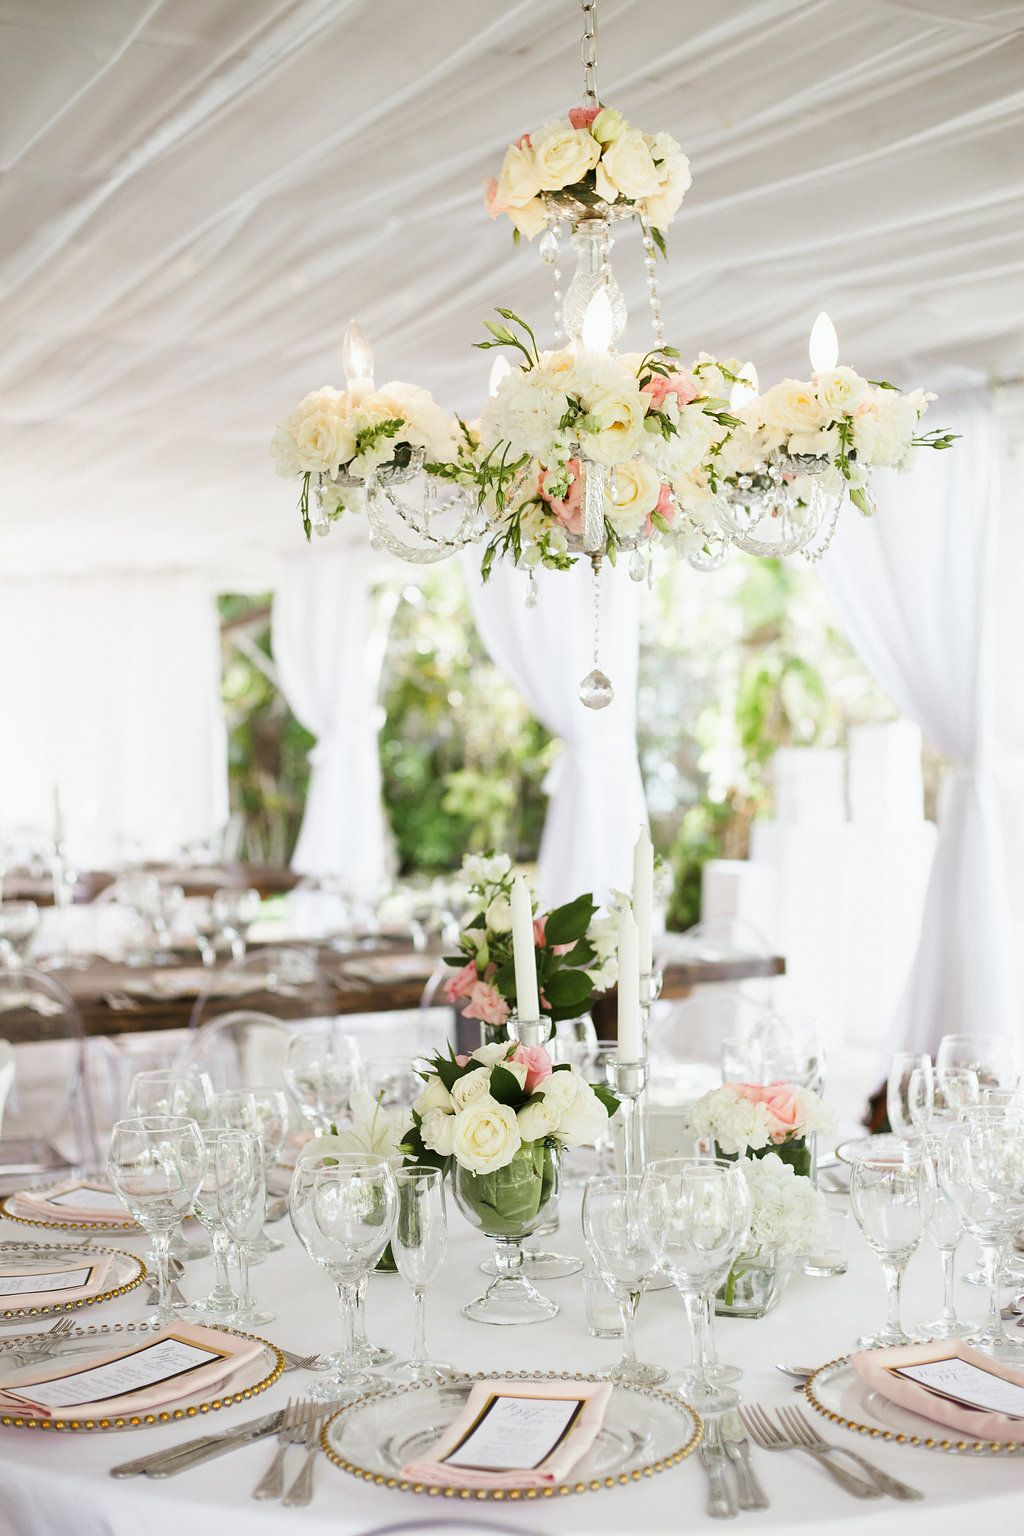 Hanging centerpiece chandelier with fresh flowers 3 wedding venue hanging centerpiece chandelier with fresh flowers 3 wedding venue kukua punta cana dominican arubaitofo Image collections